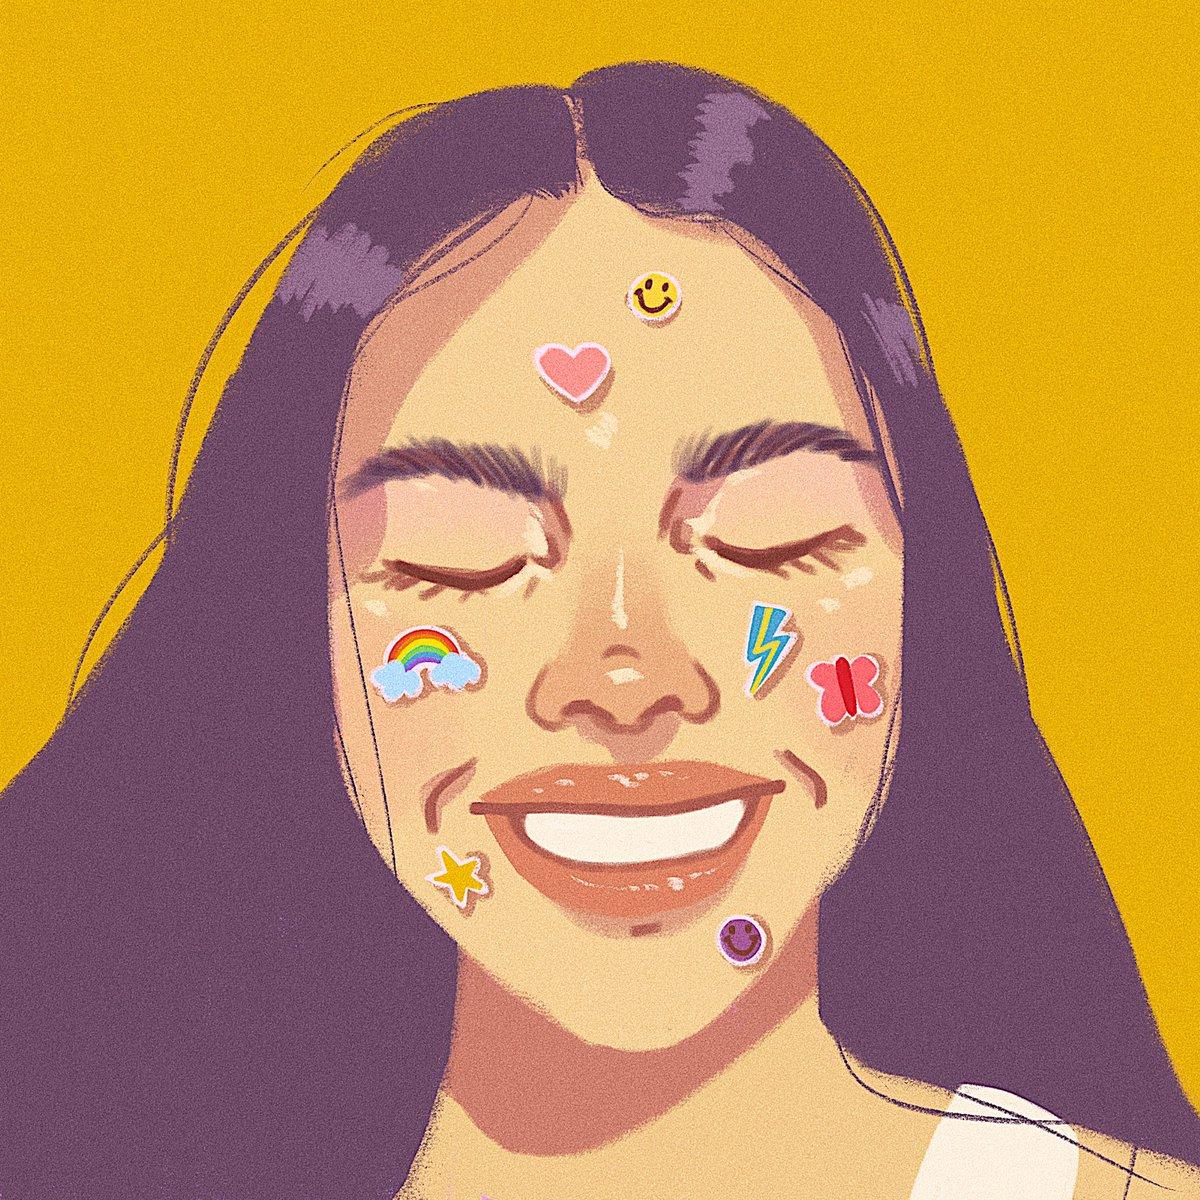 been just a little bit obsessed with @Olivia_Rodrigo ⭐️ 🌈 💖 (reference photo by @ashleyosborn)